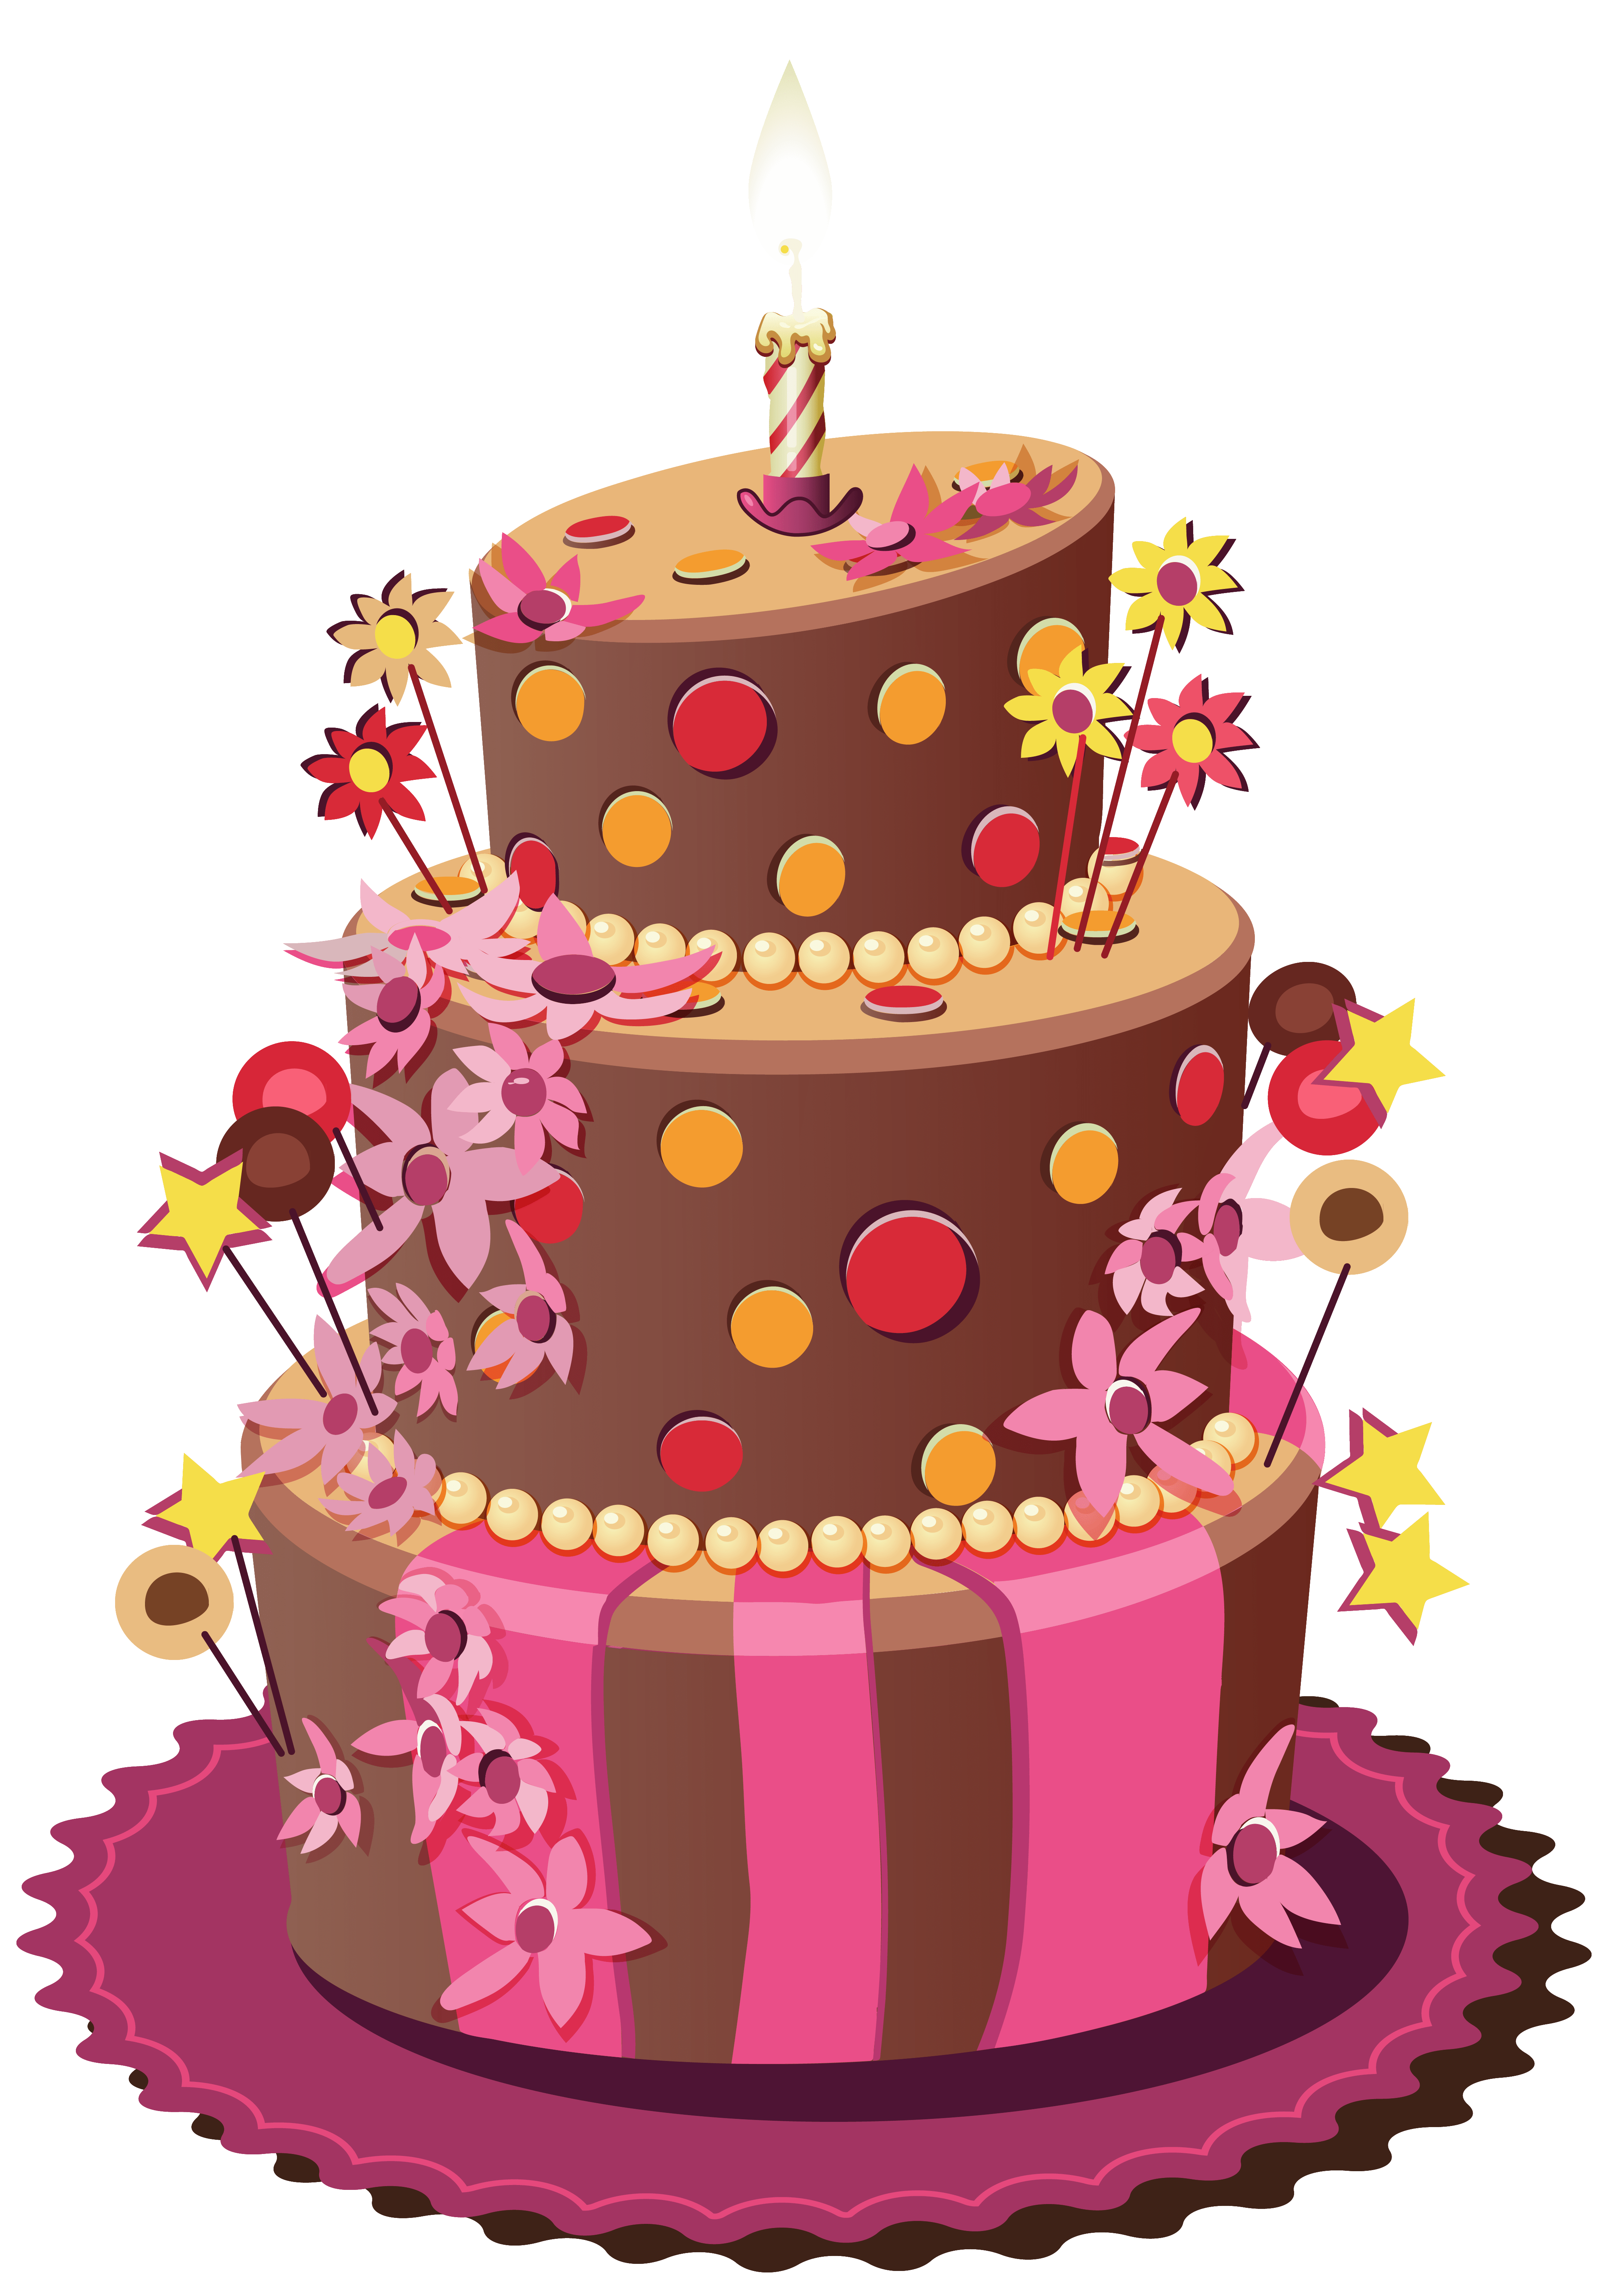 Birthday Cake Png Clipart Image Gallery Yopriceville High